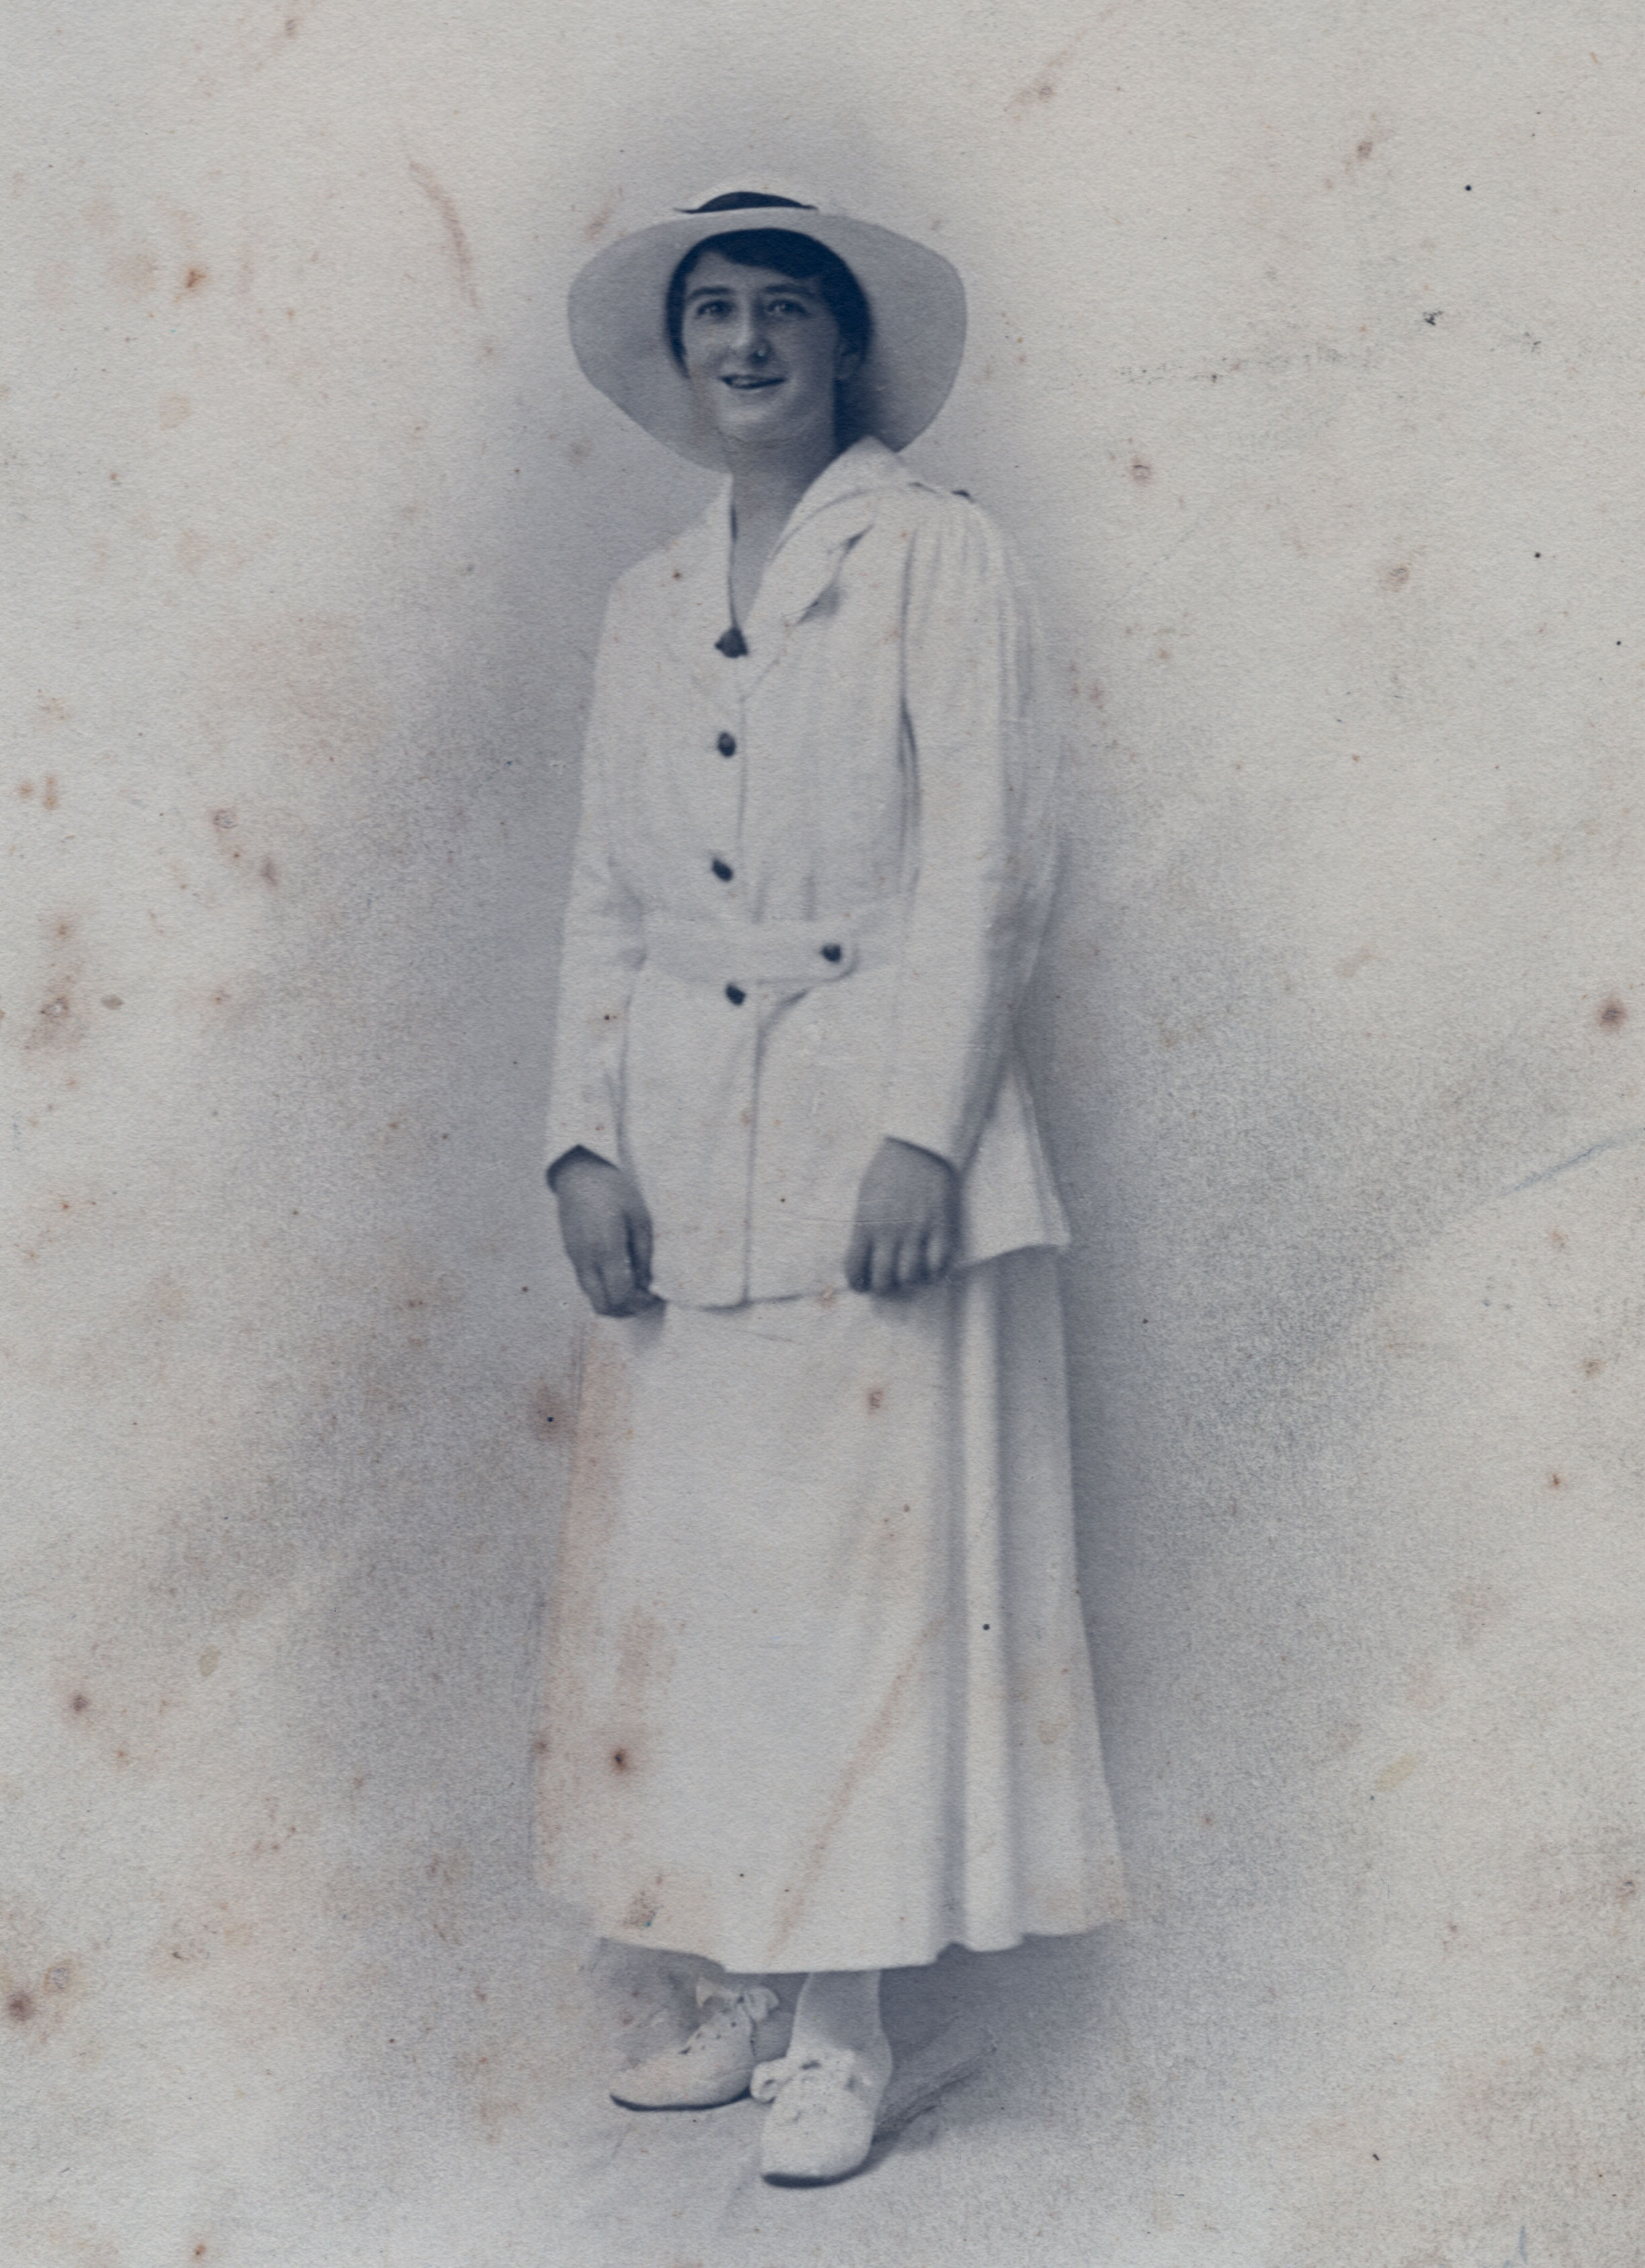 Brooks in AANS uniform for India (private collection)